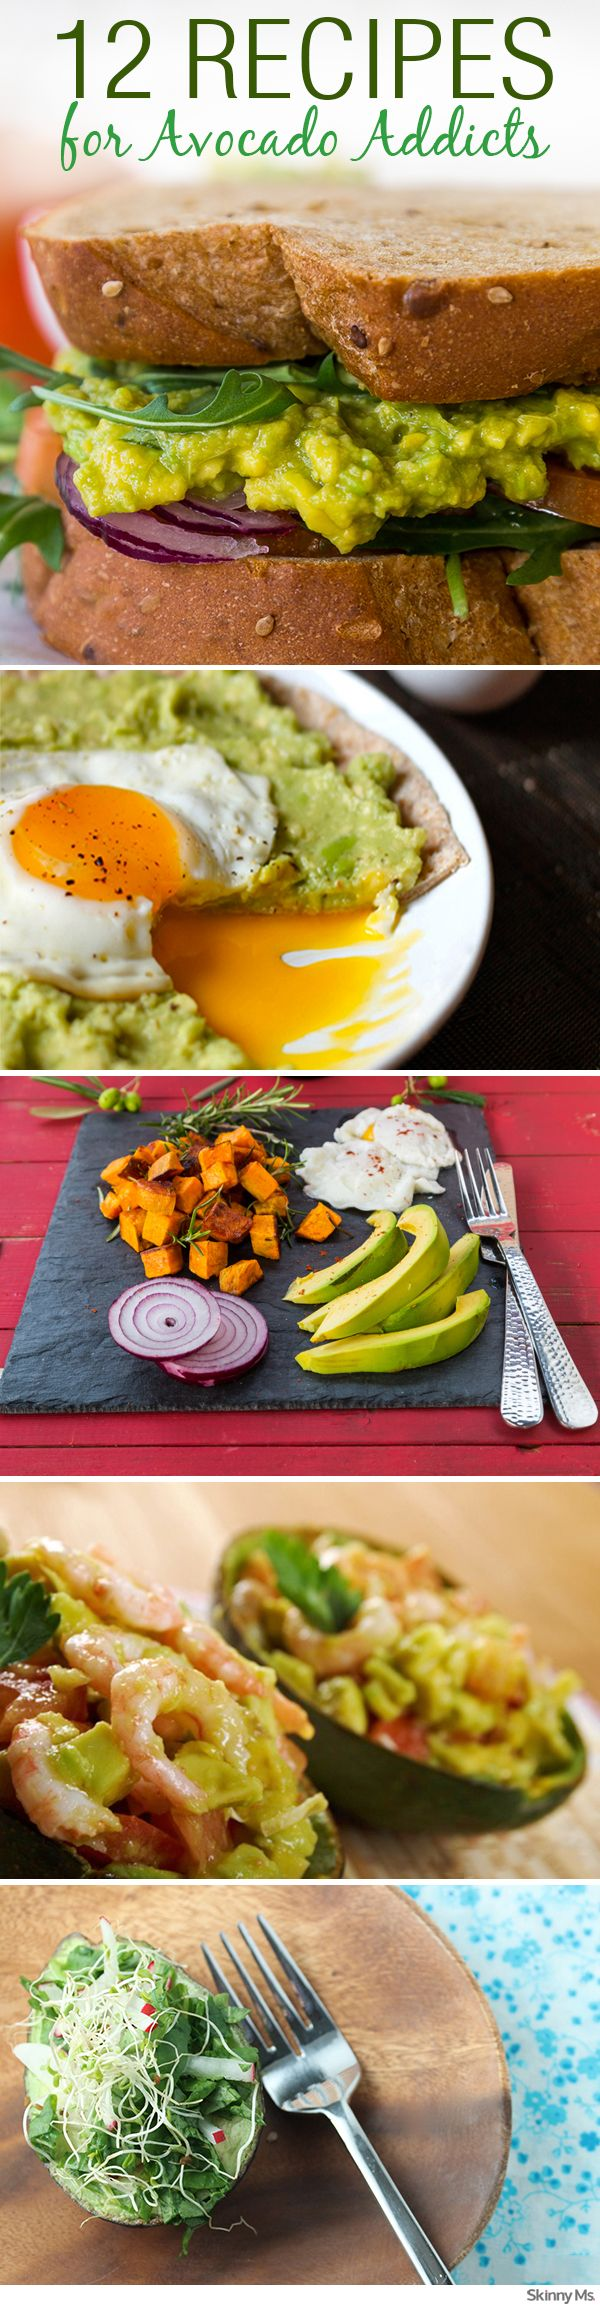 Avocados are the real deal. They're rich in healthy monounsaturated fats that research suggests lowers the risk of heart disease and decreases LDL (bad) cholesterol. It's super-versatile, making it a delicious addition to meals any time of day. #avocado